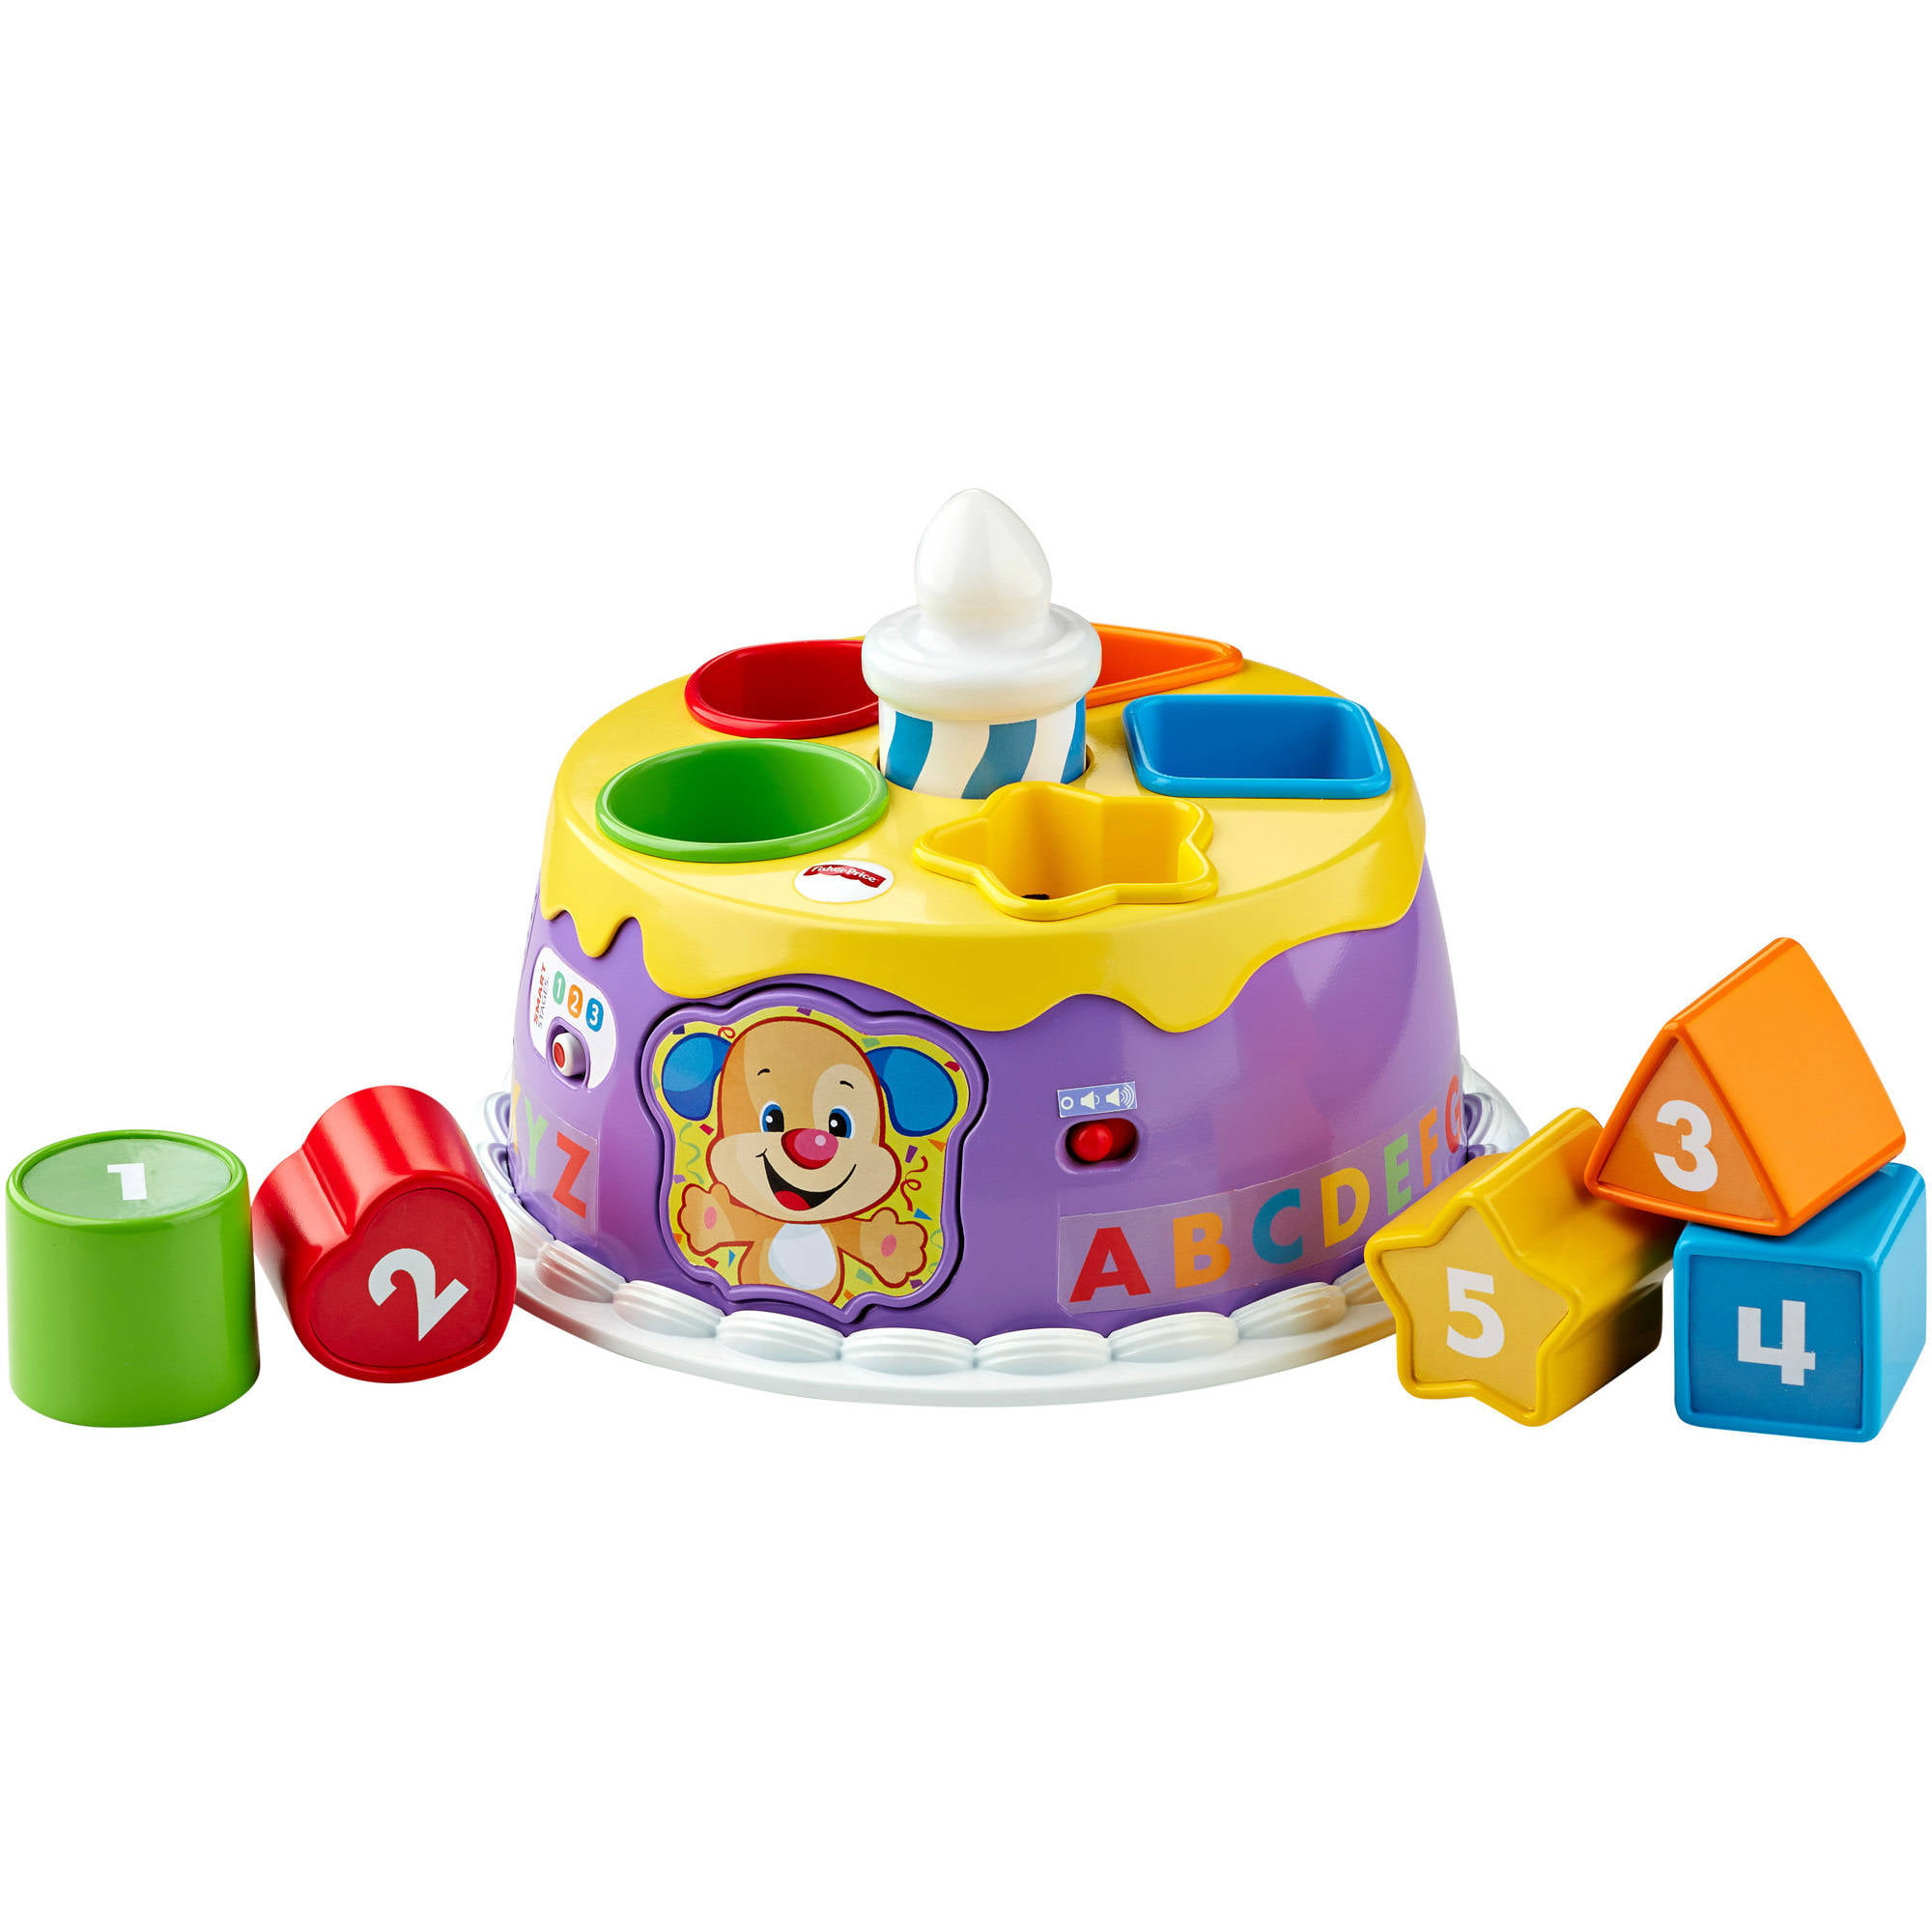 FisherPrice Laugh Learn Smart Stages Magical Lights Birthday Cake